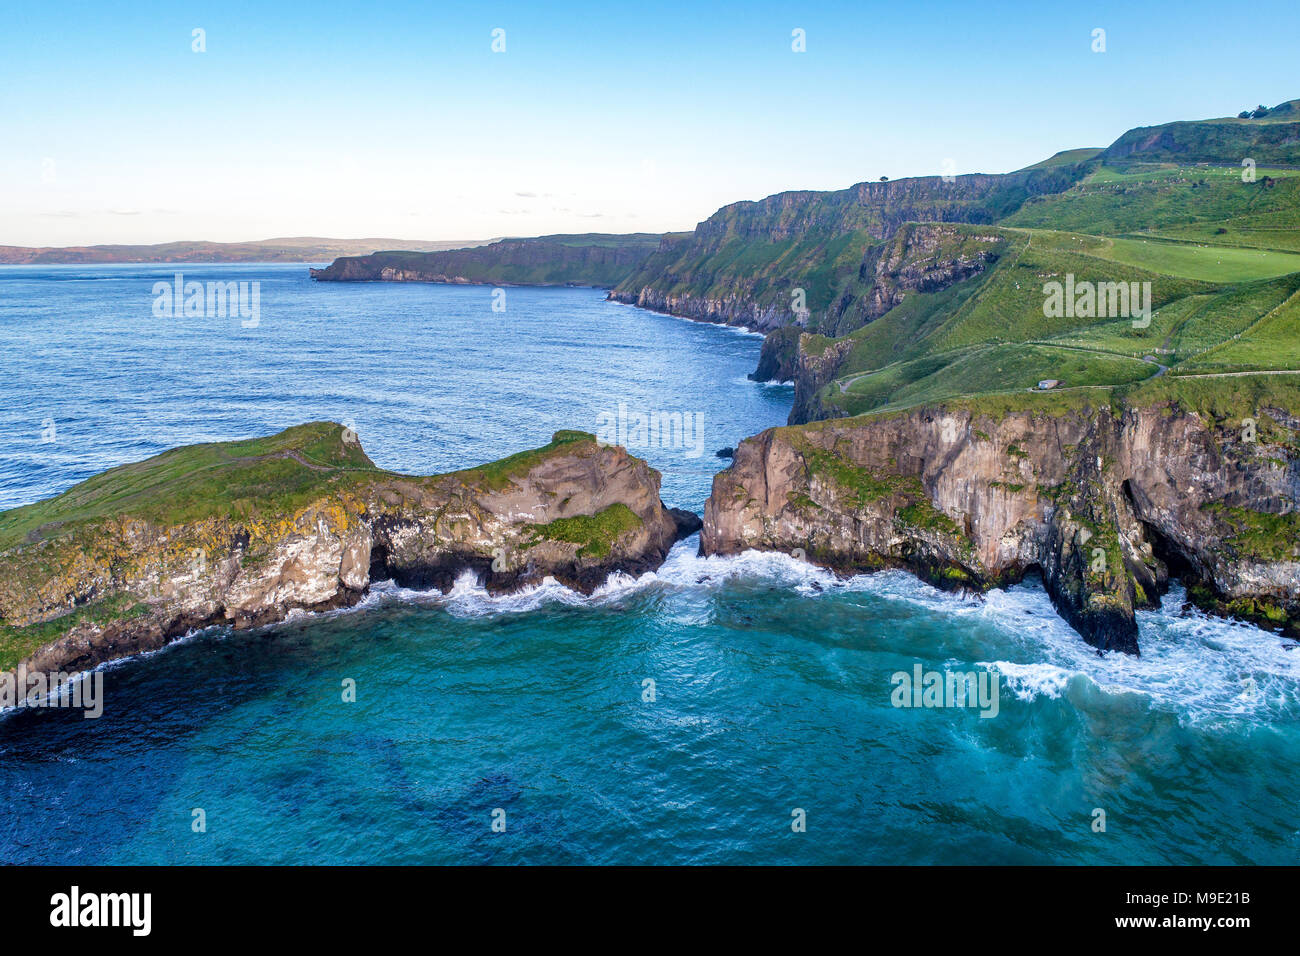 Northern Ireland, UK. Atlantic coast with cliffs and far aerial view of Carrick-a-Rede Rope Bridge in County Antrim - Stock Image